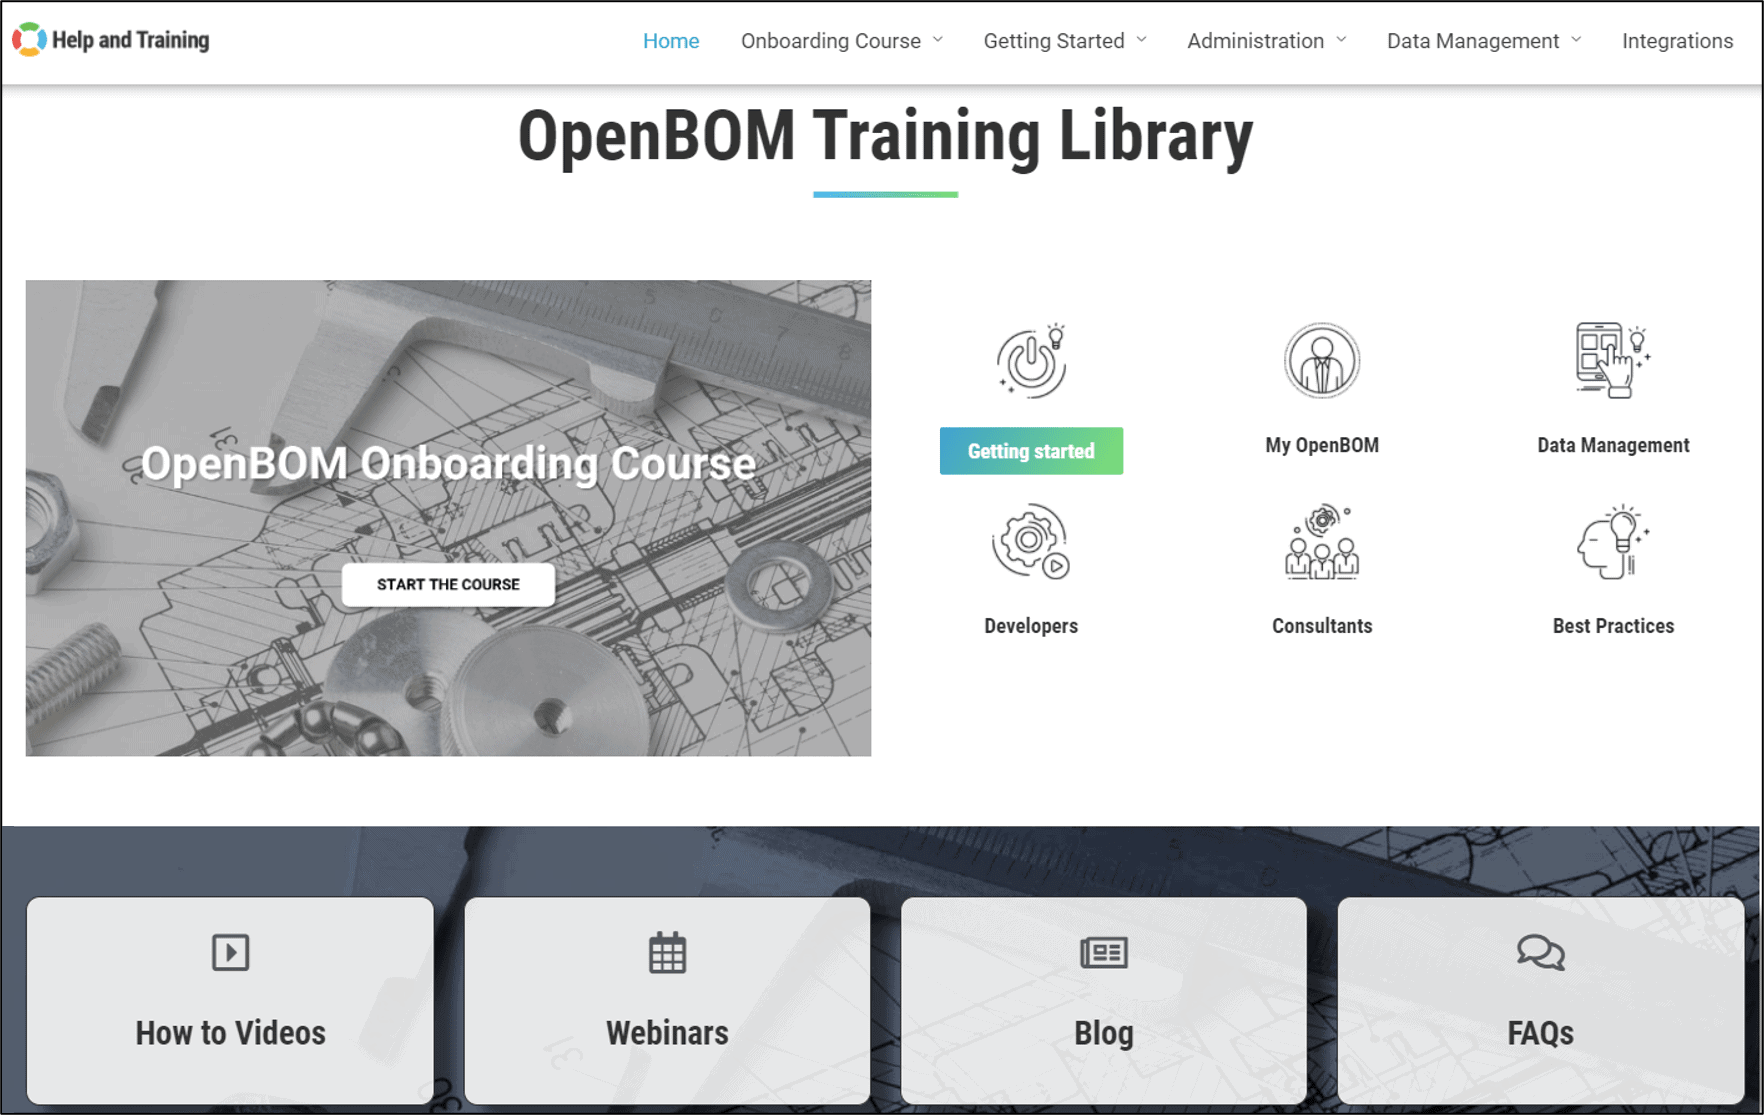 OpenBOM Training Library